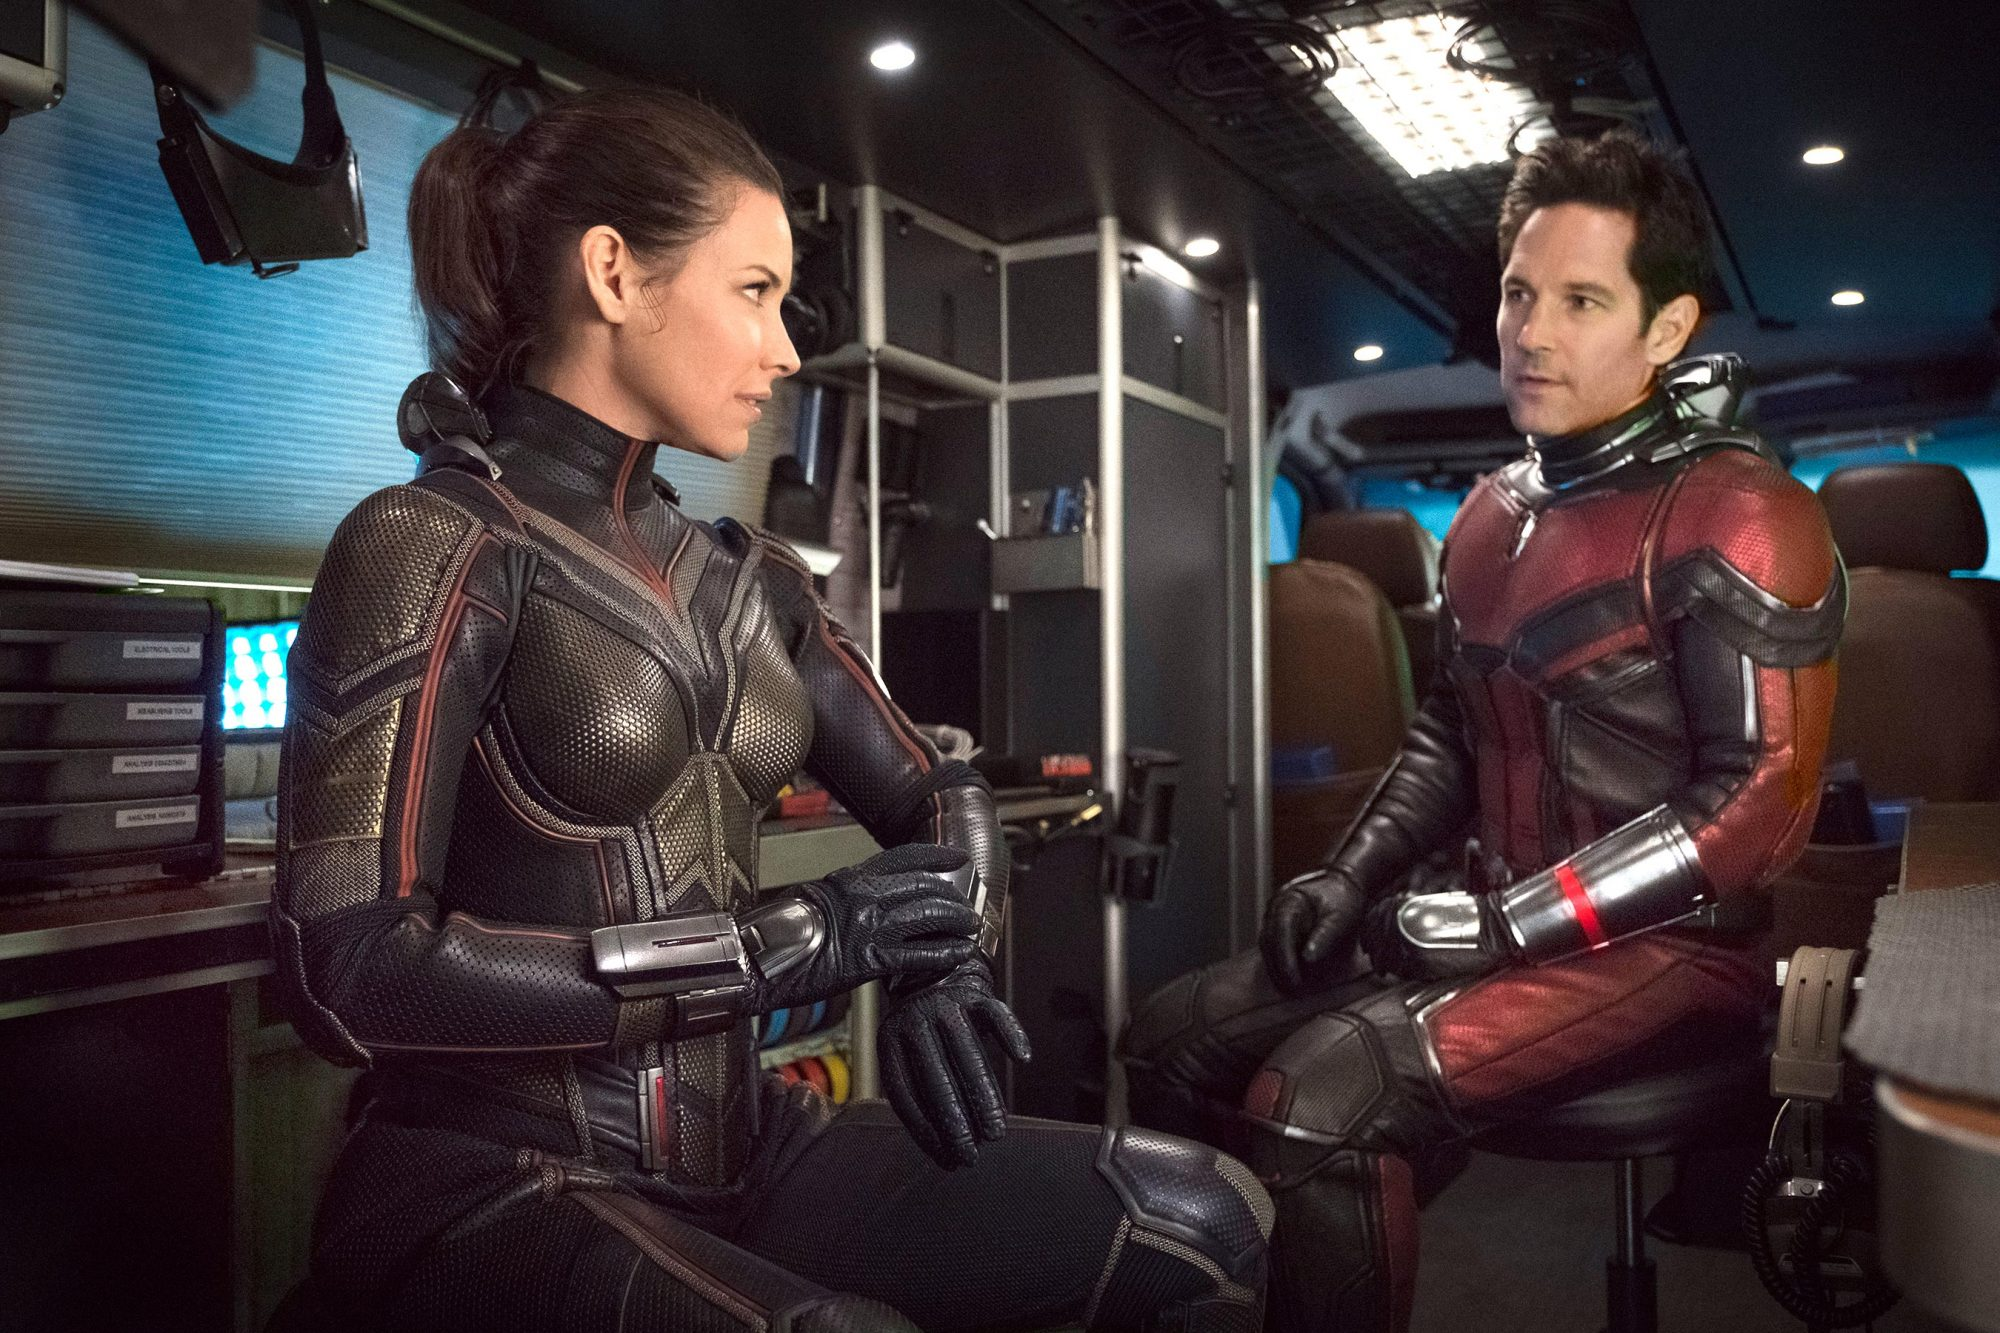 18. Ant-Man and the Wasp(2018)